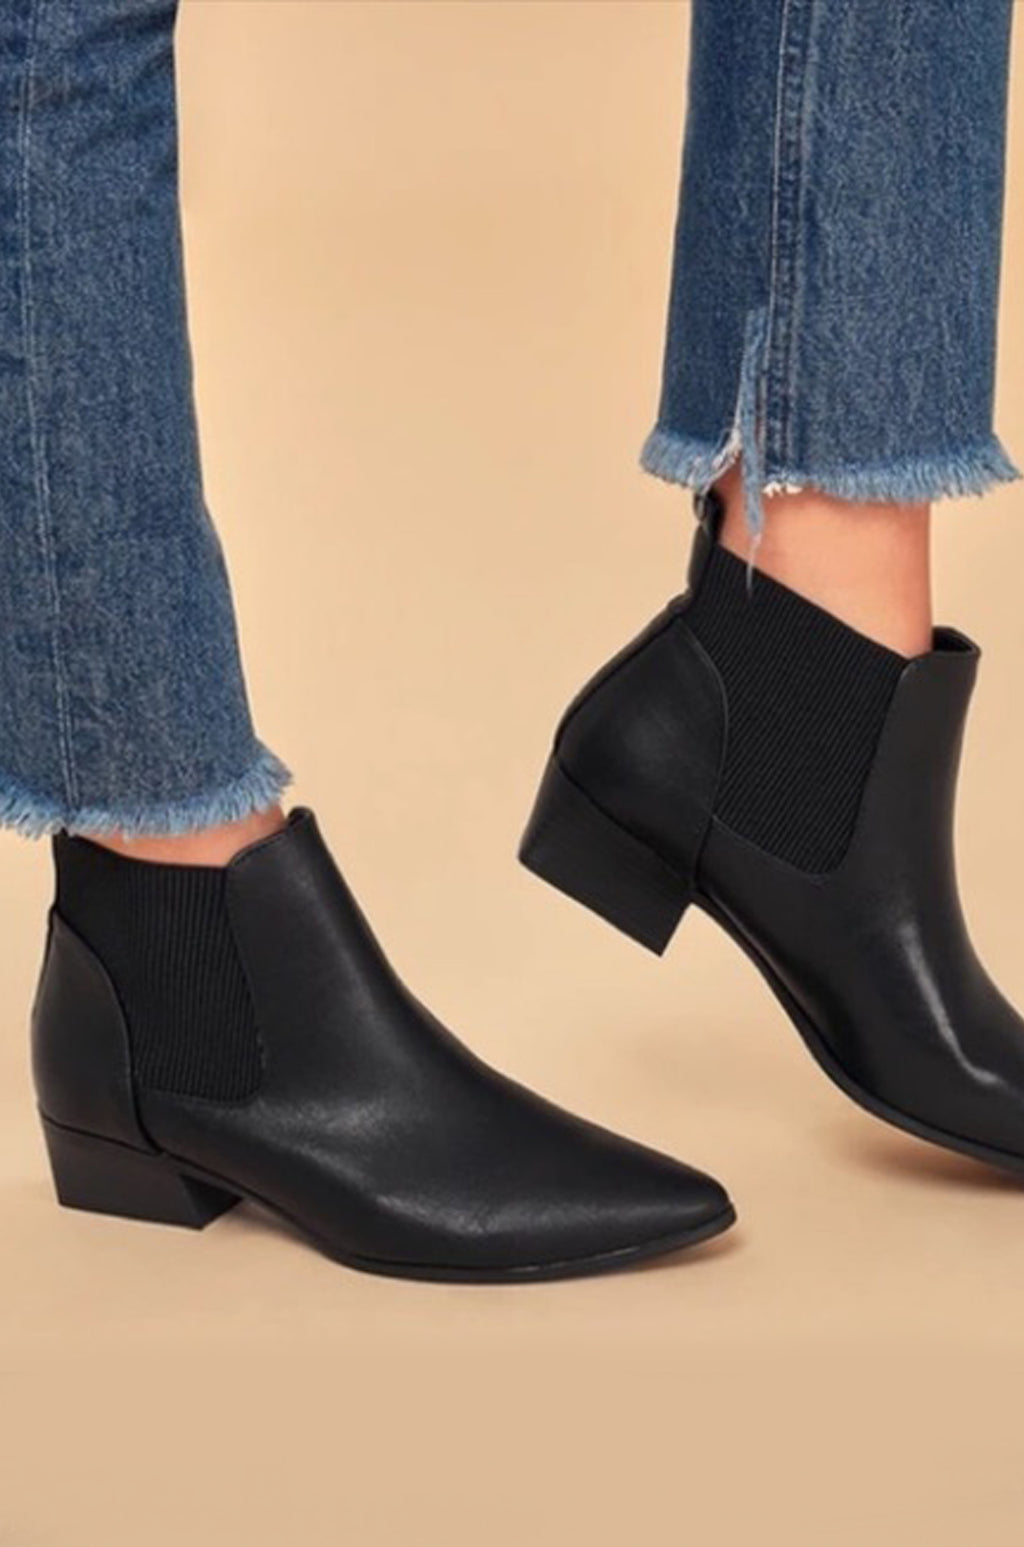 Motto - Black Pointed Toe Chelsea Booties